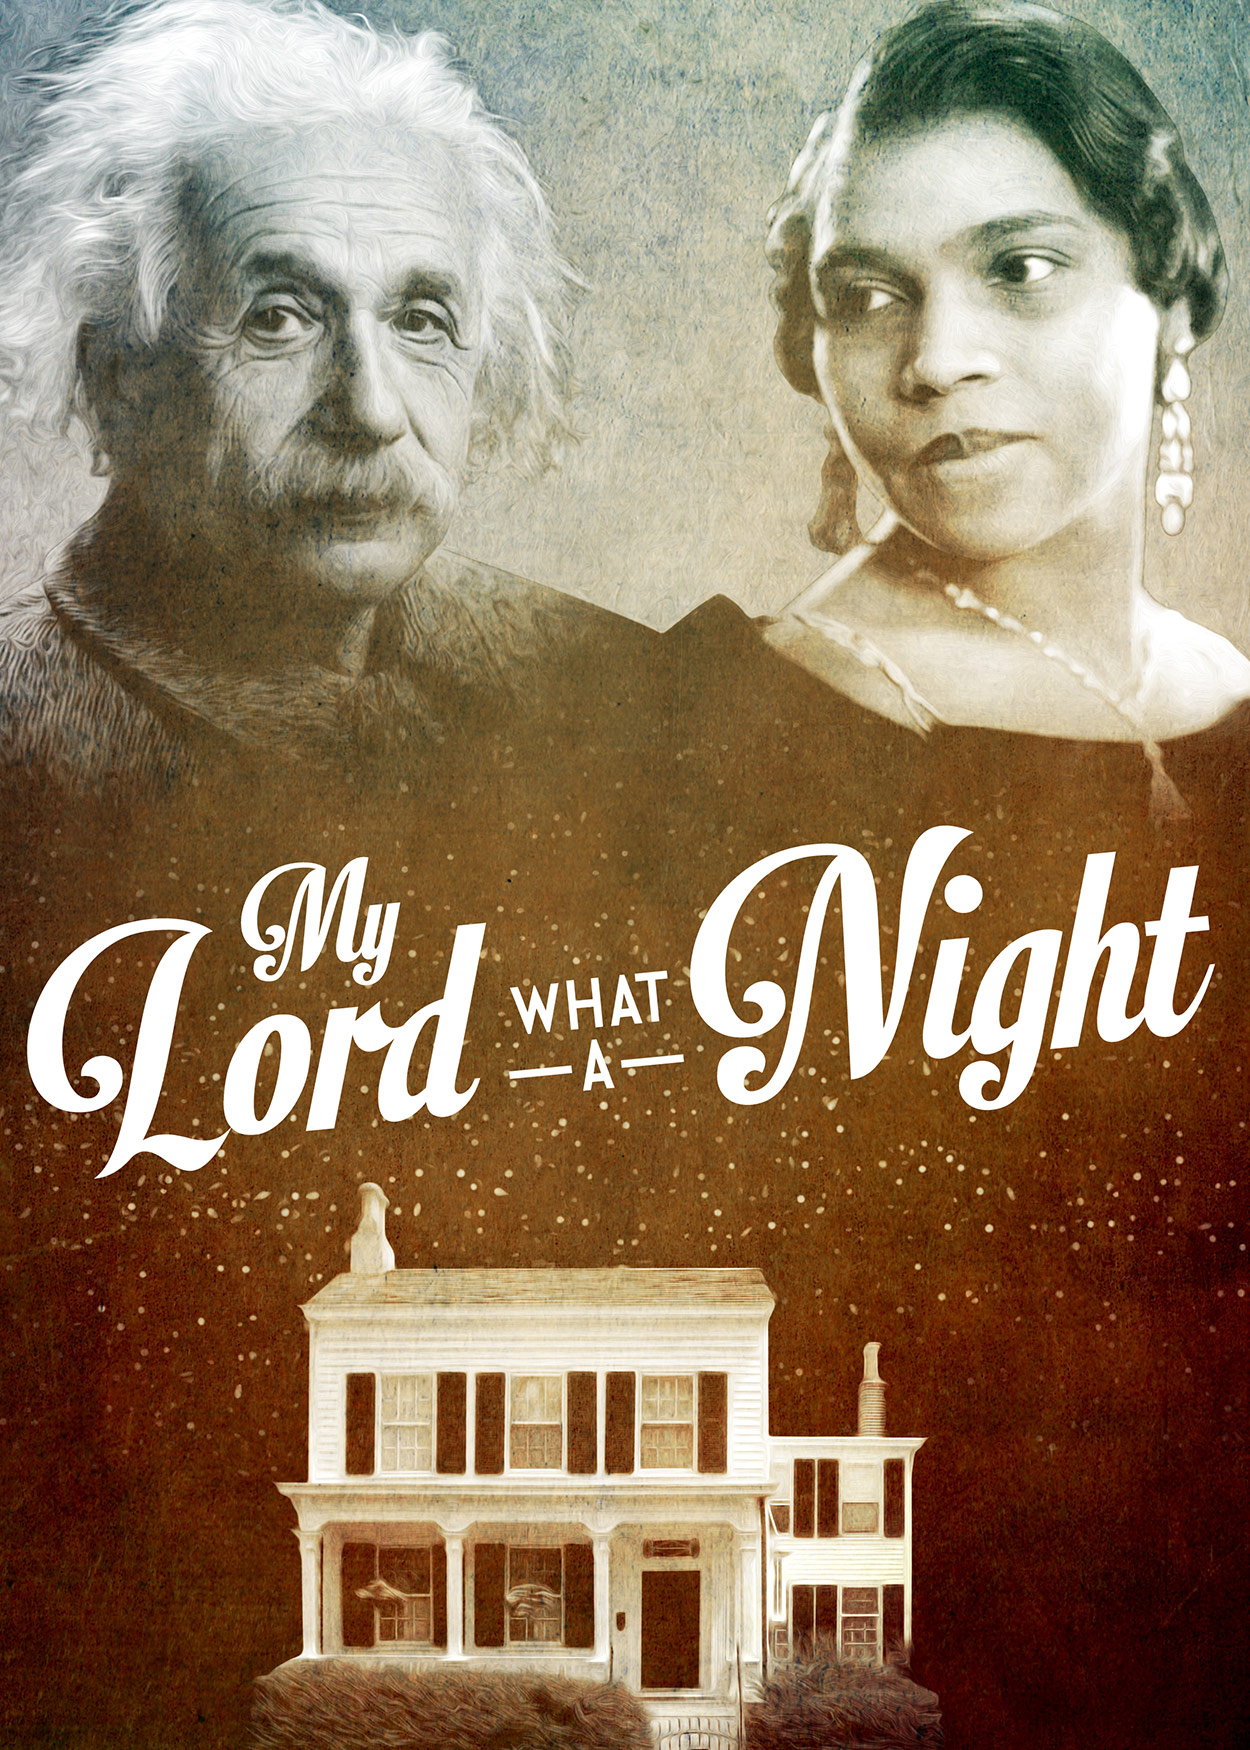 Key Art from My Lord, What a Night (2016). Photos of Albert Einstein and Marian Anderson are at the top of the image. The image of a white house is at the bottom.